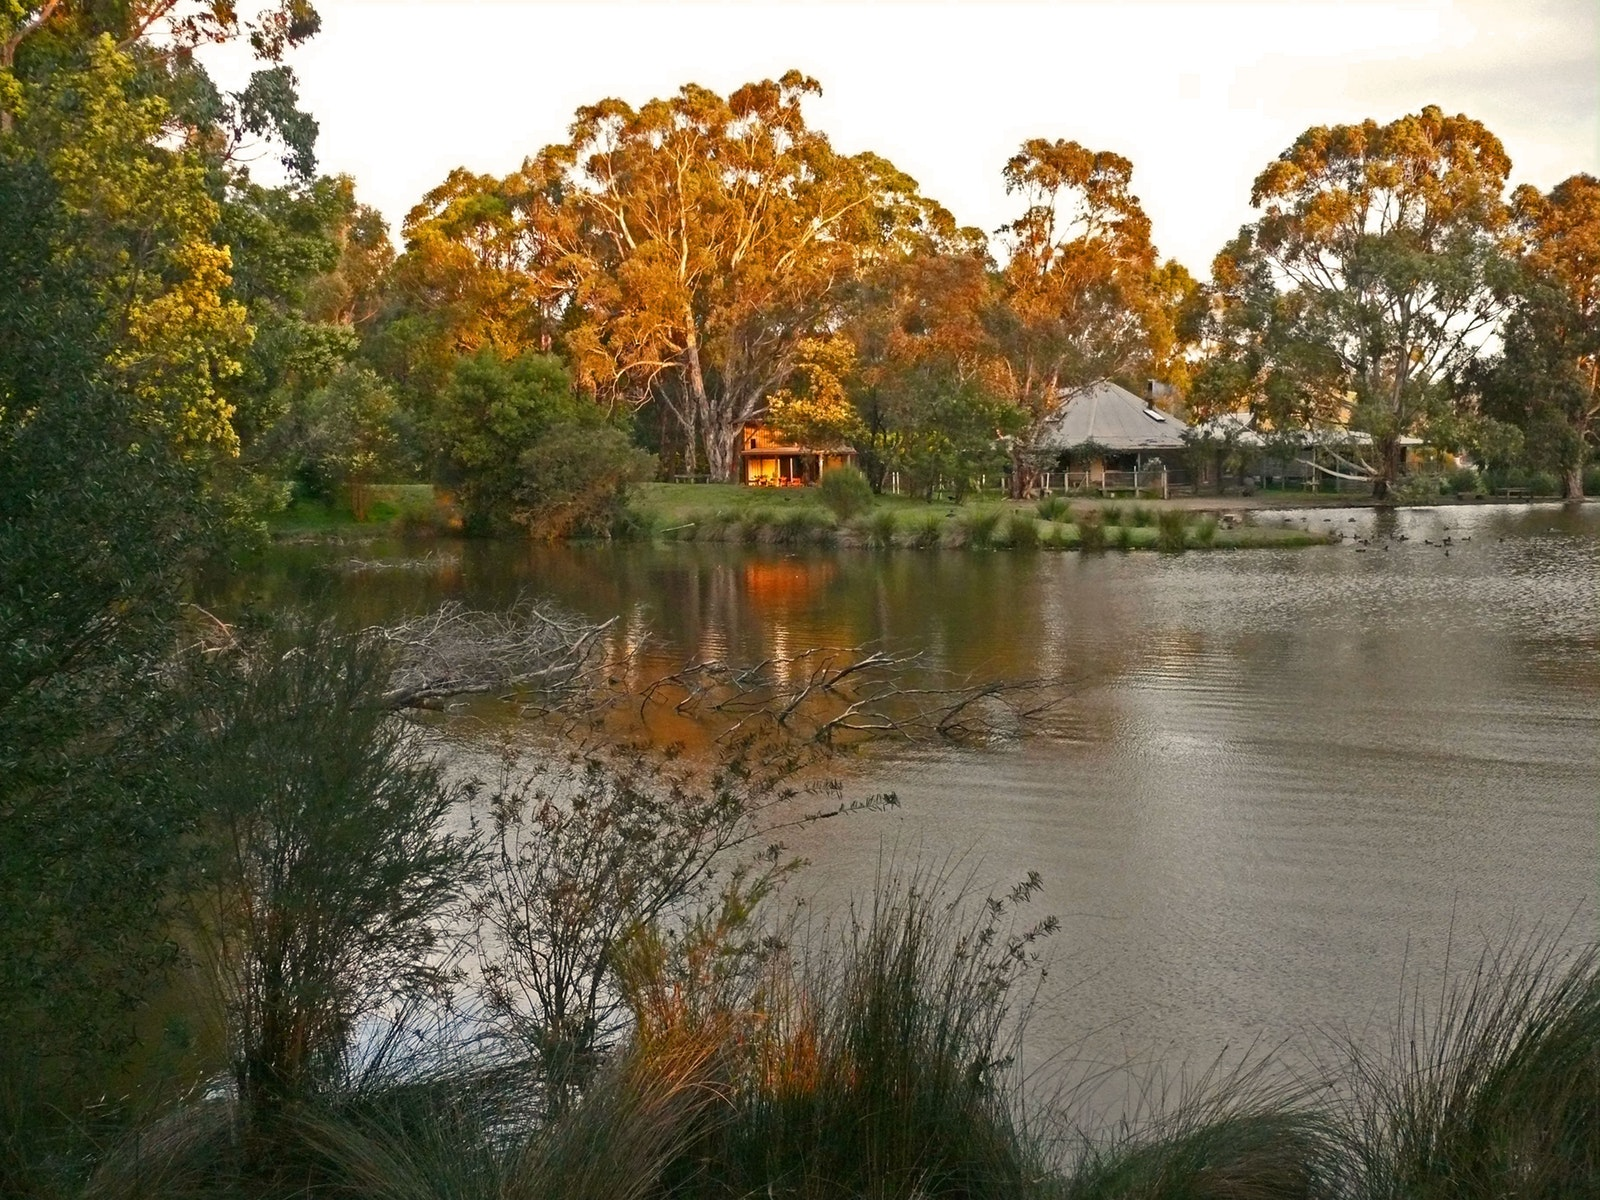 The billabong in the evening light